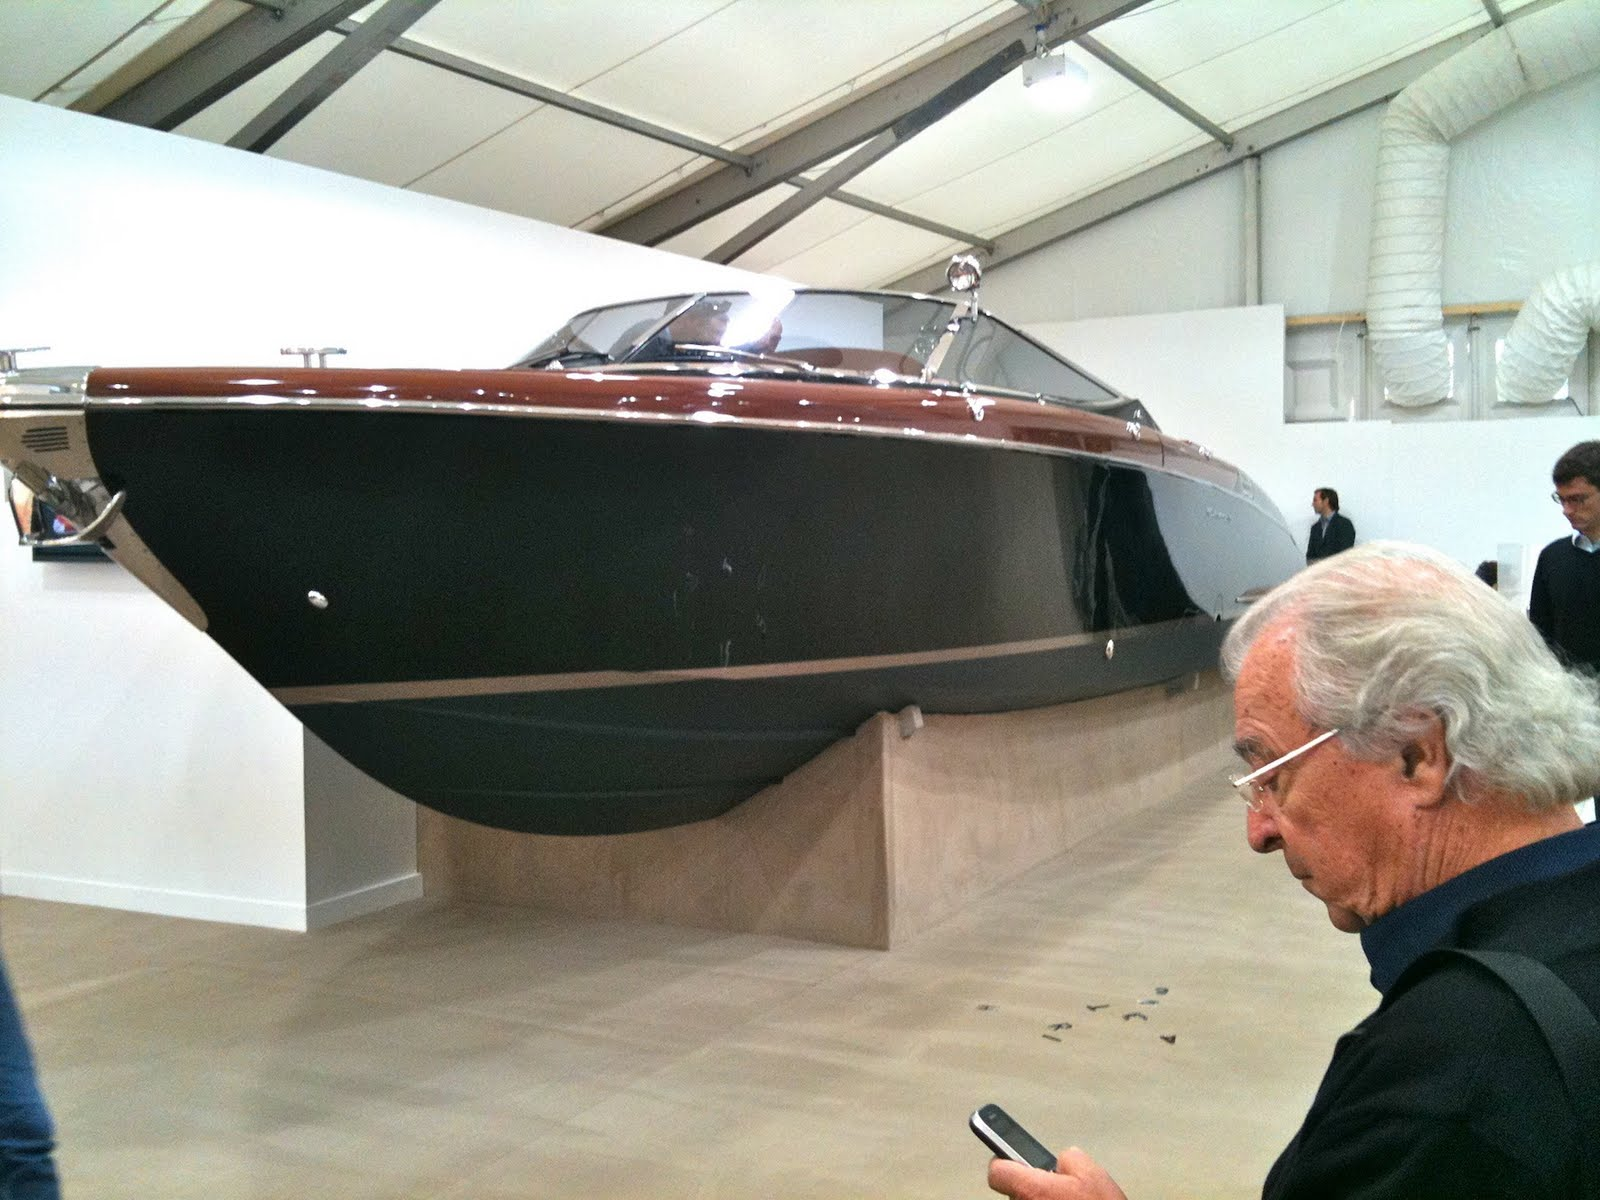 The big media draw at this year's Frieze fair was a super yacht and matching ...